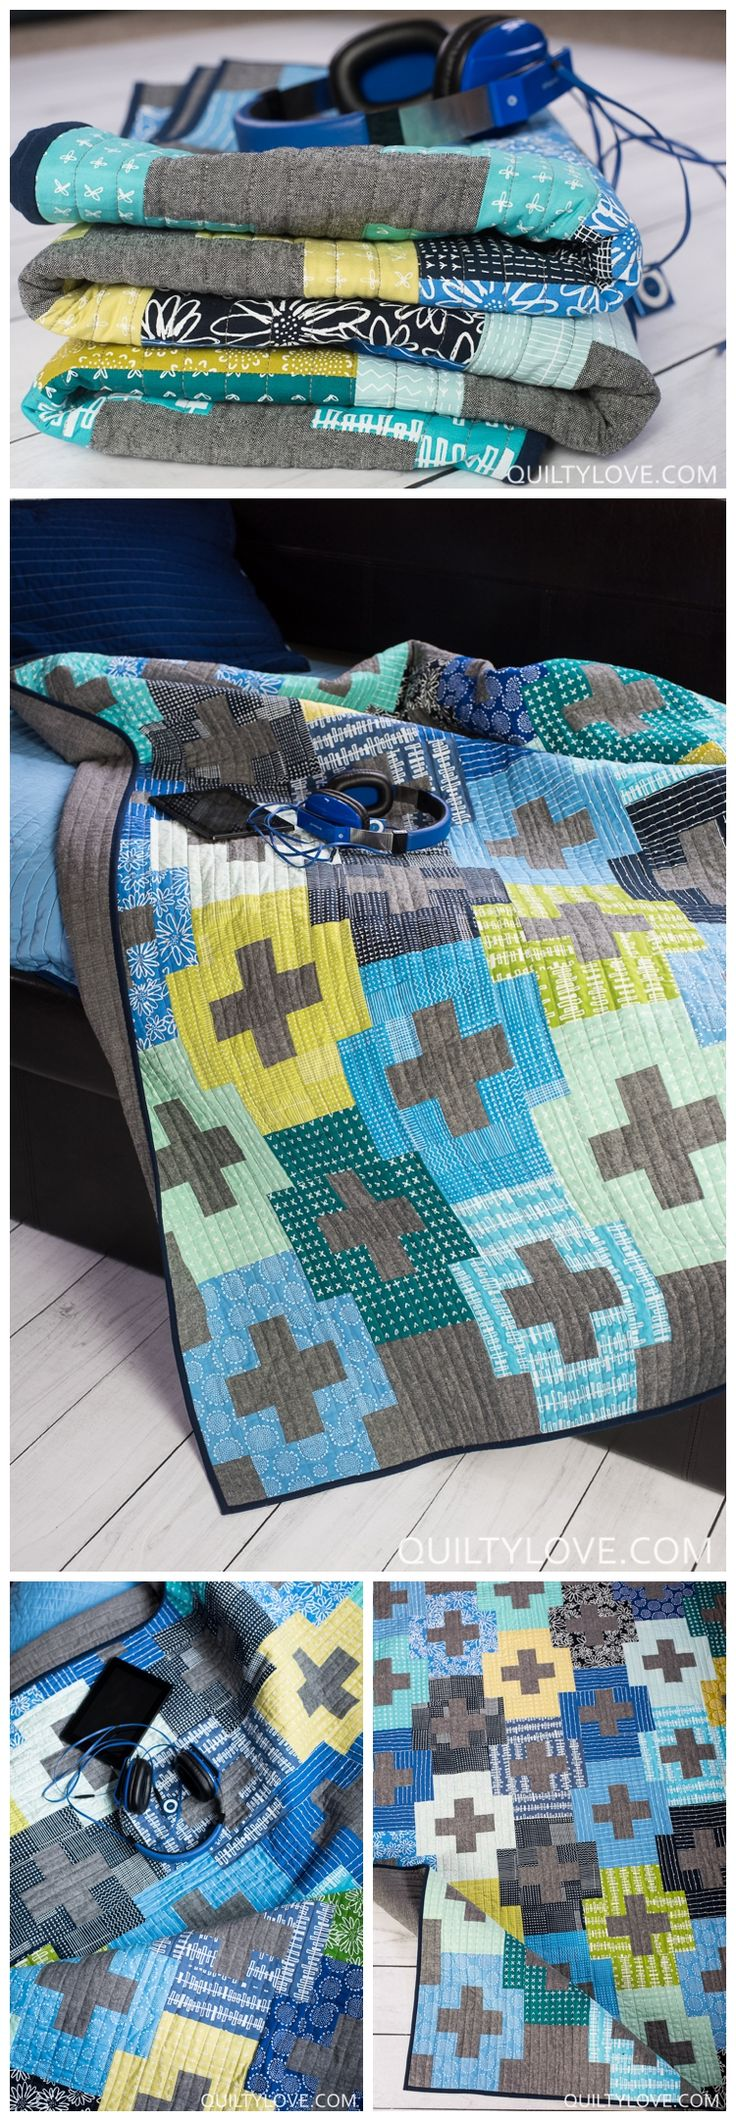 Plus and Minus Quilt Pattern by Emily of Quiltylove.com.  Easy plus   quilt for the modern quilter.  Beginner friendly plus quilt.  Fat   quarter friendly plus quilt.  Blueberry Park fabrics by Karen Lewis for   Robert Kaufman.  Essex linen quilt.  #plusquilt #modernquilt   #quiltpattern